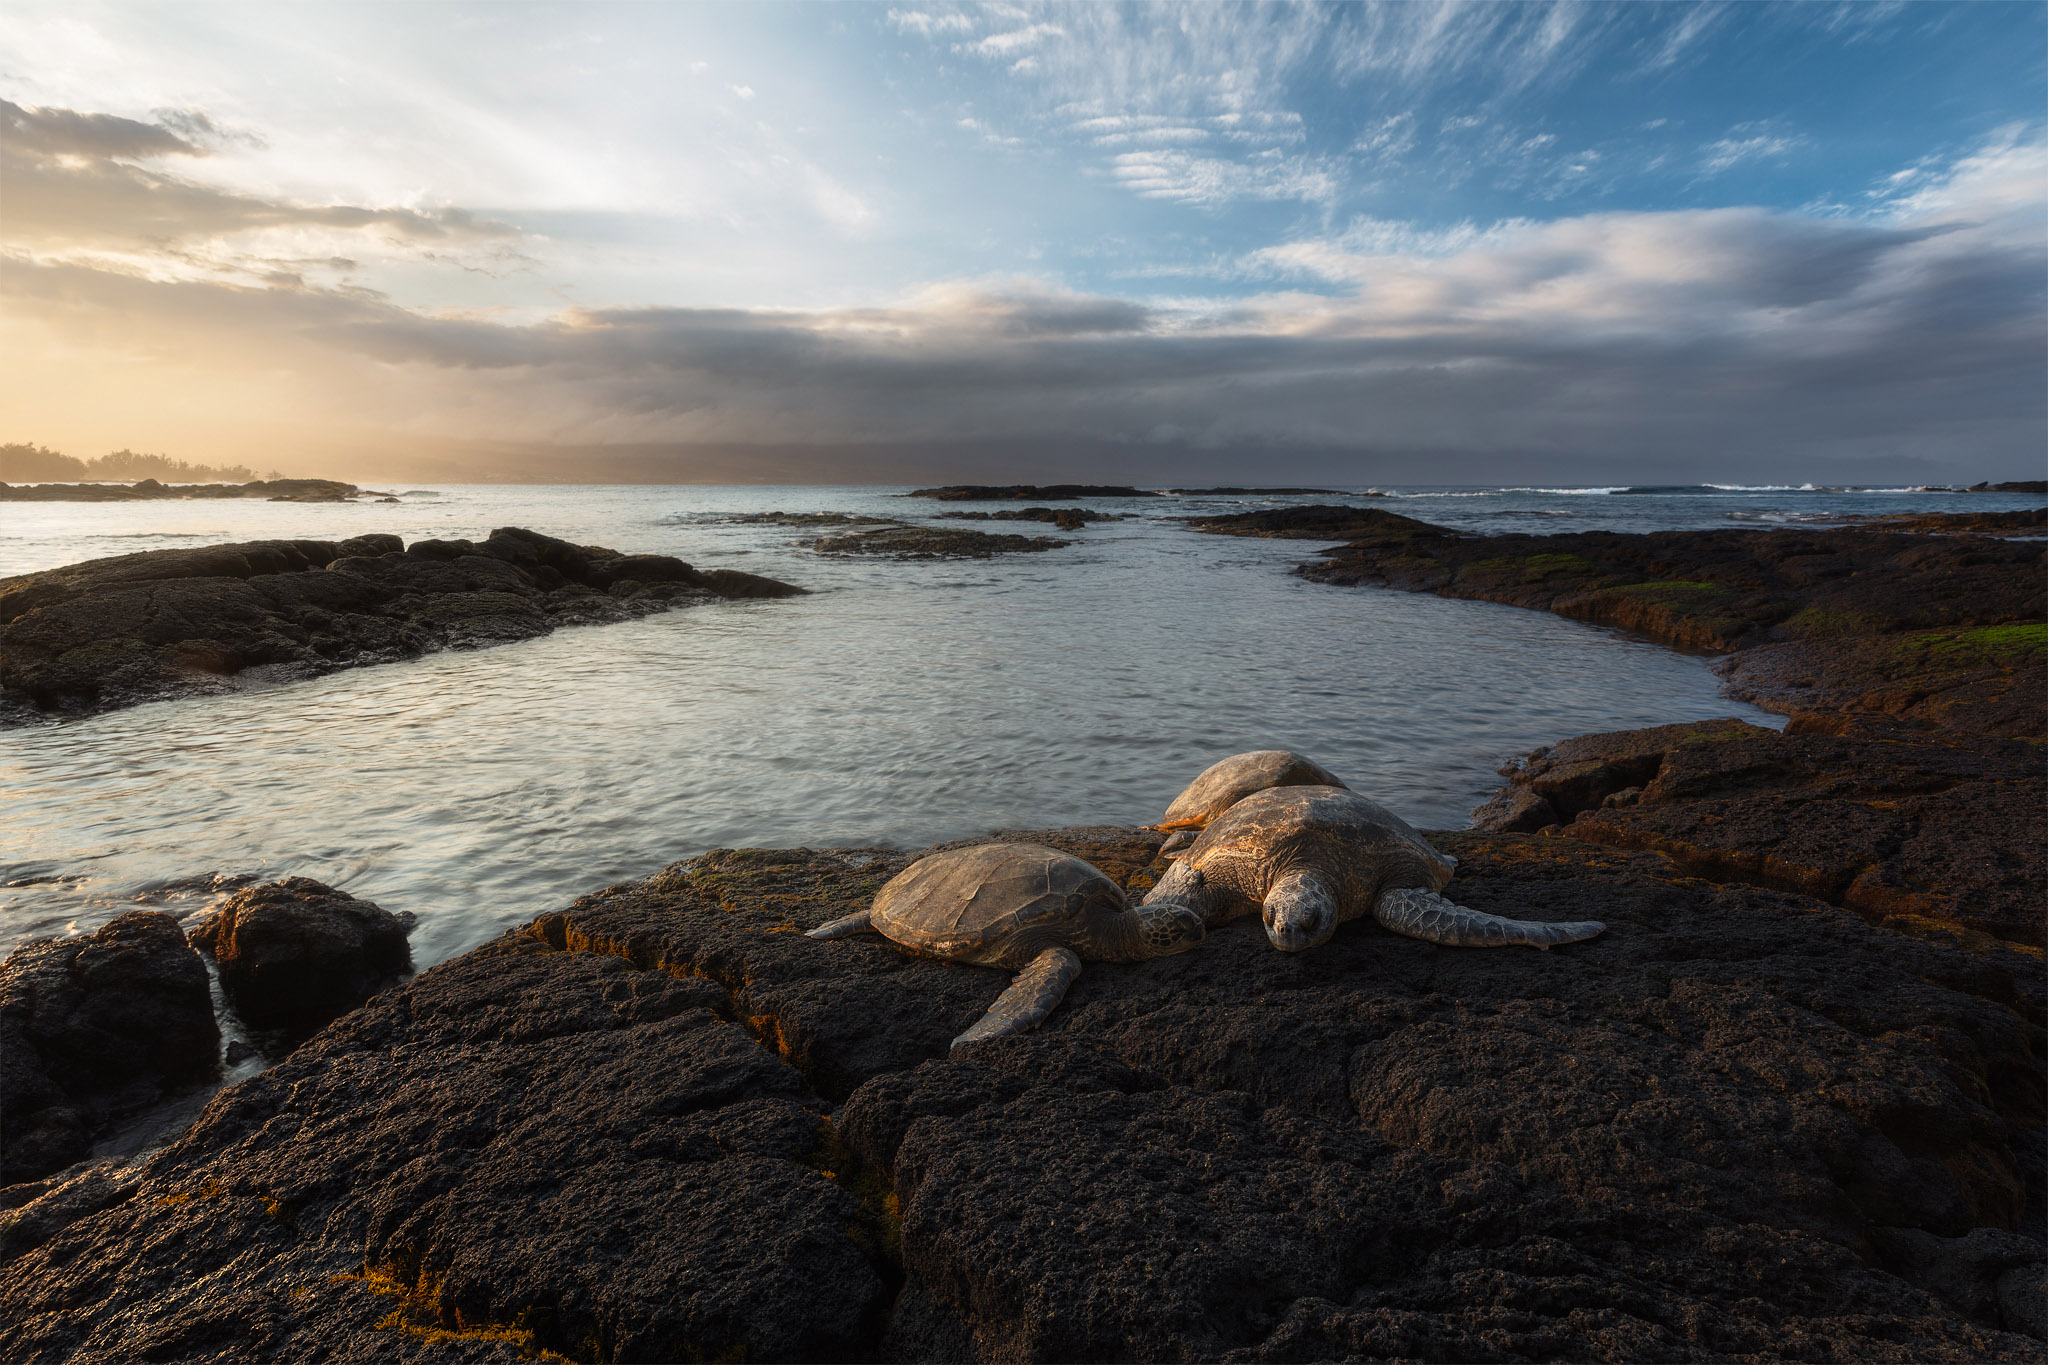 In this photo 3 Honu (Hawaii green sea turtles) rest on the warm lava rock during sunset. The dramatic clouds made for a compelling...